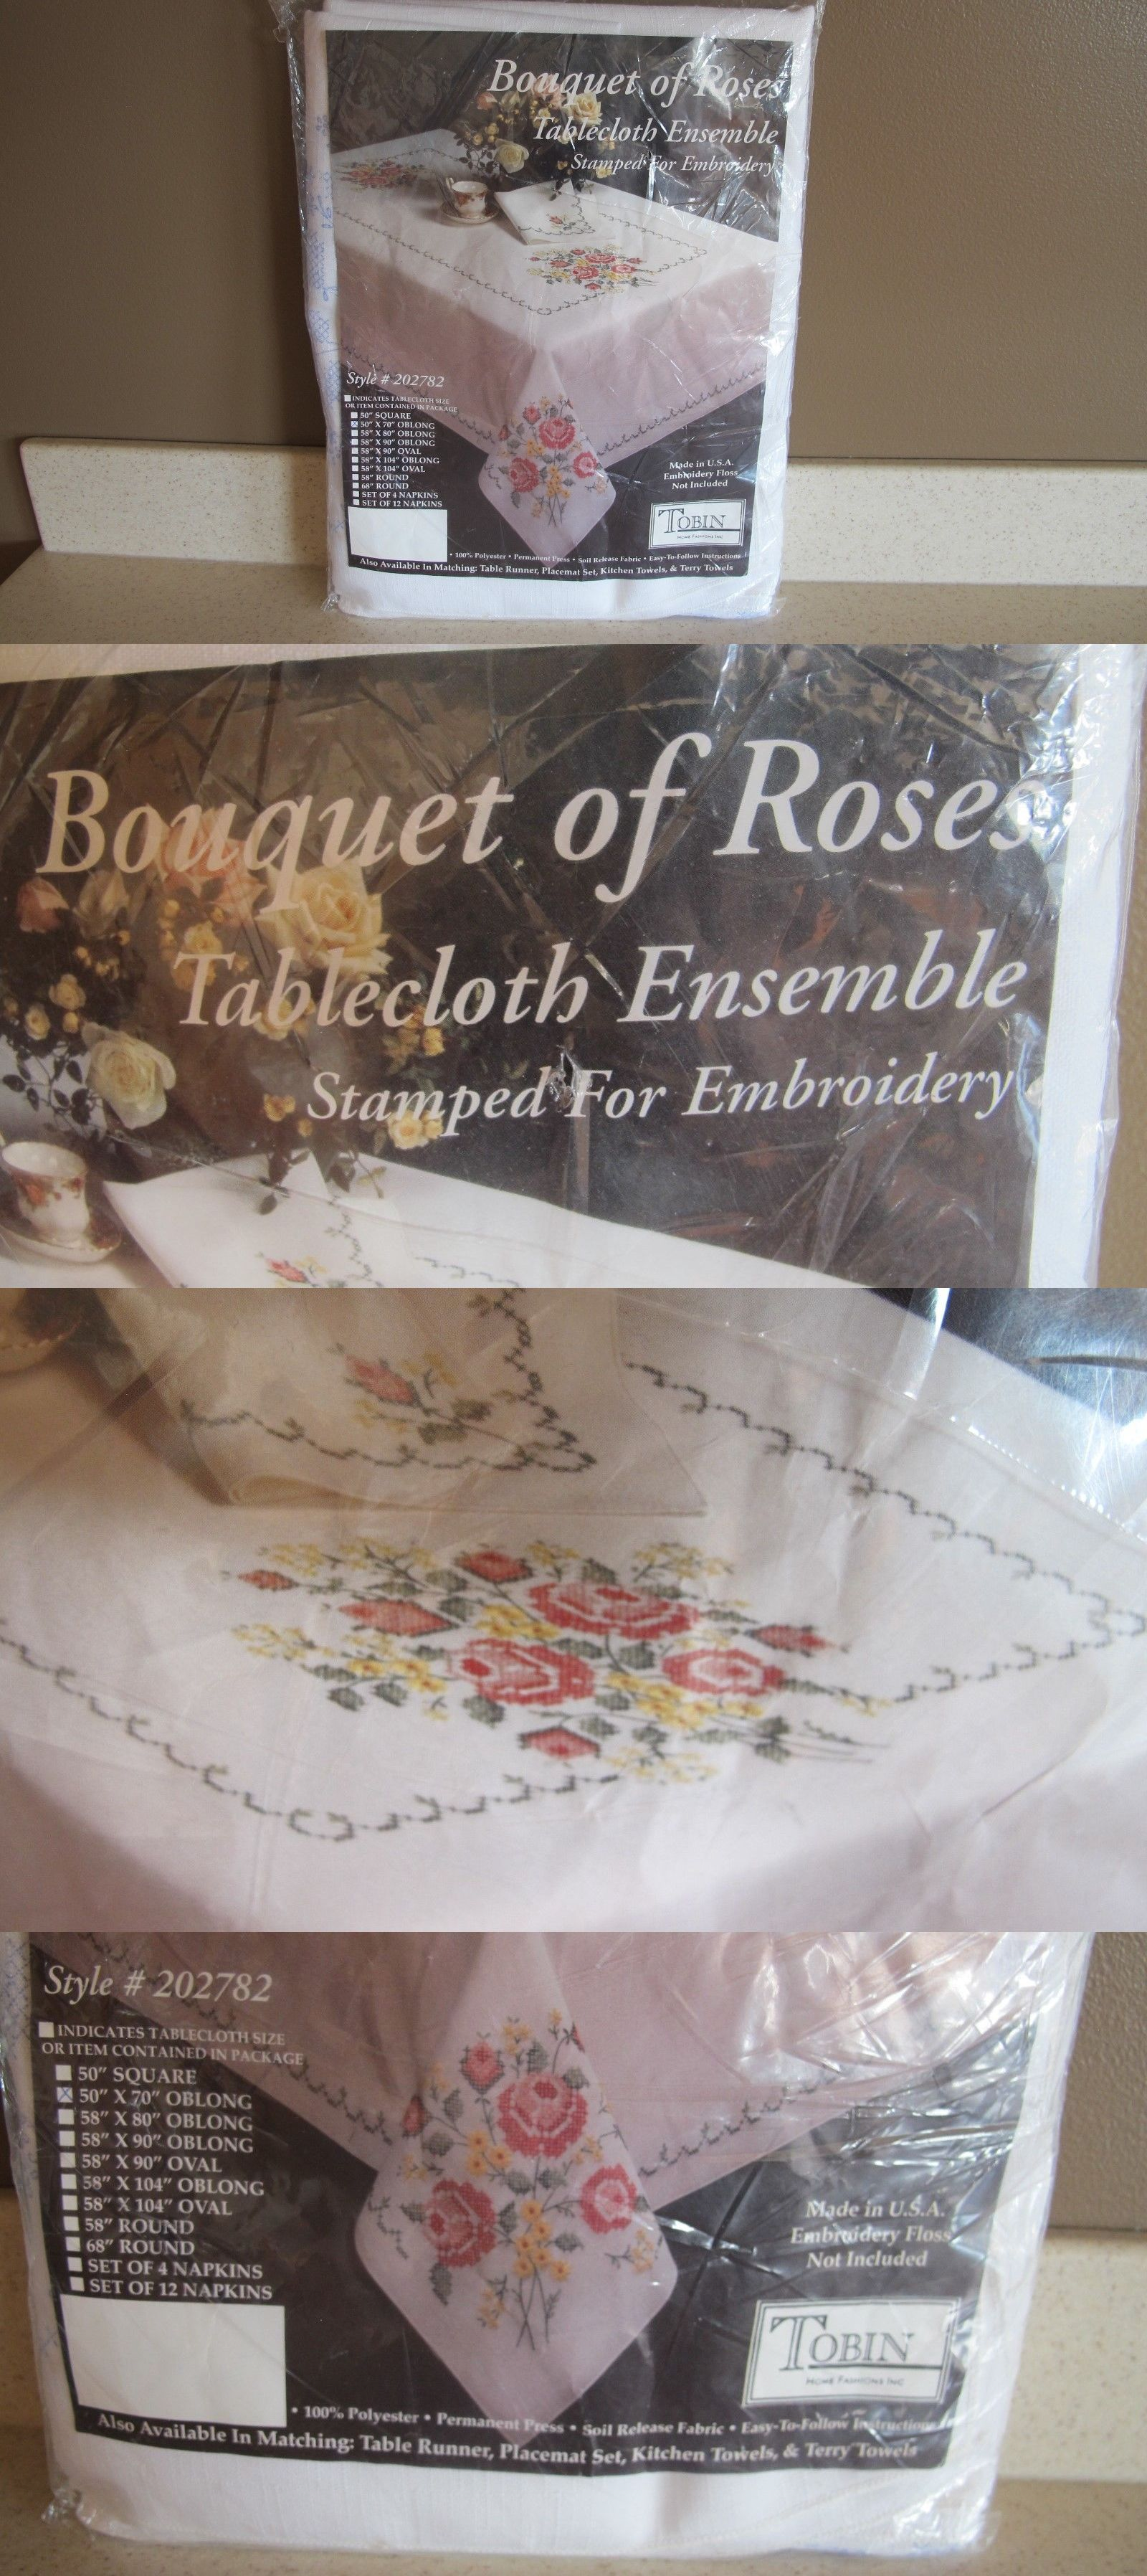 Stamped Linens 75566: Tobin Bauquet Of Roses Tablecloth Stamped Embroidery  Cross Stitch 50 X 70